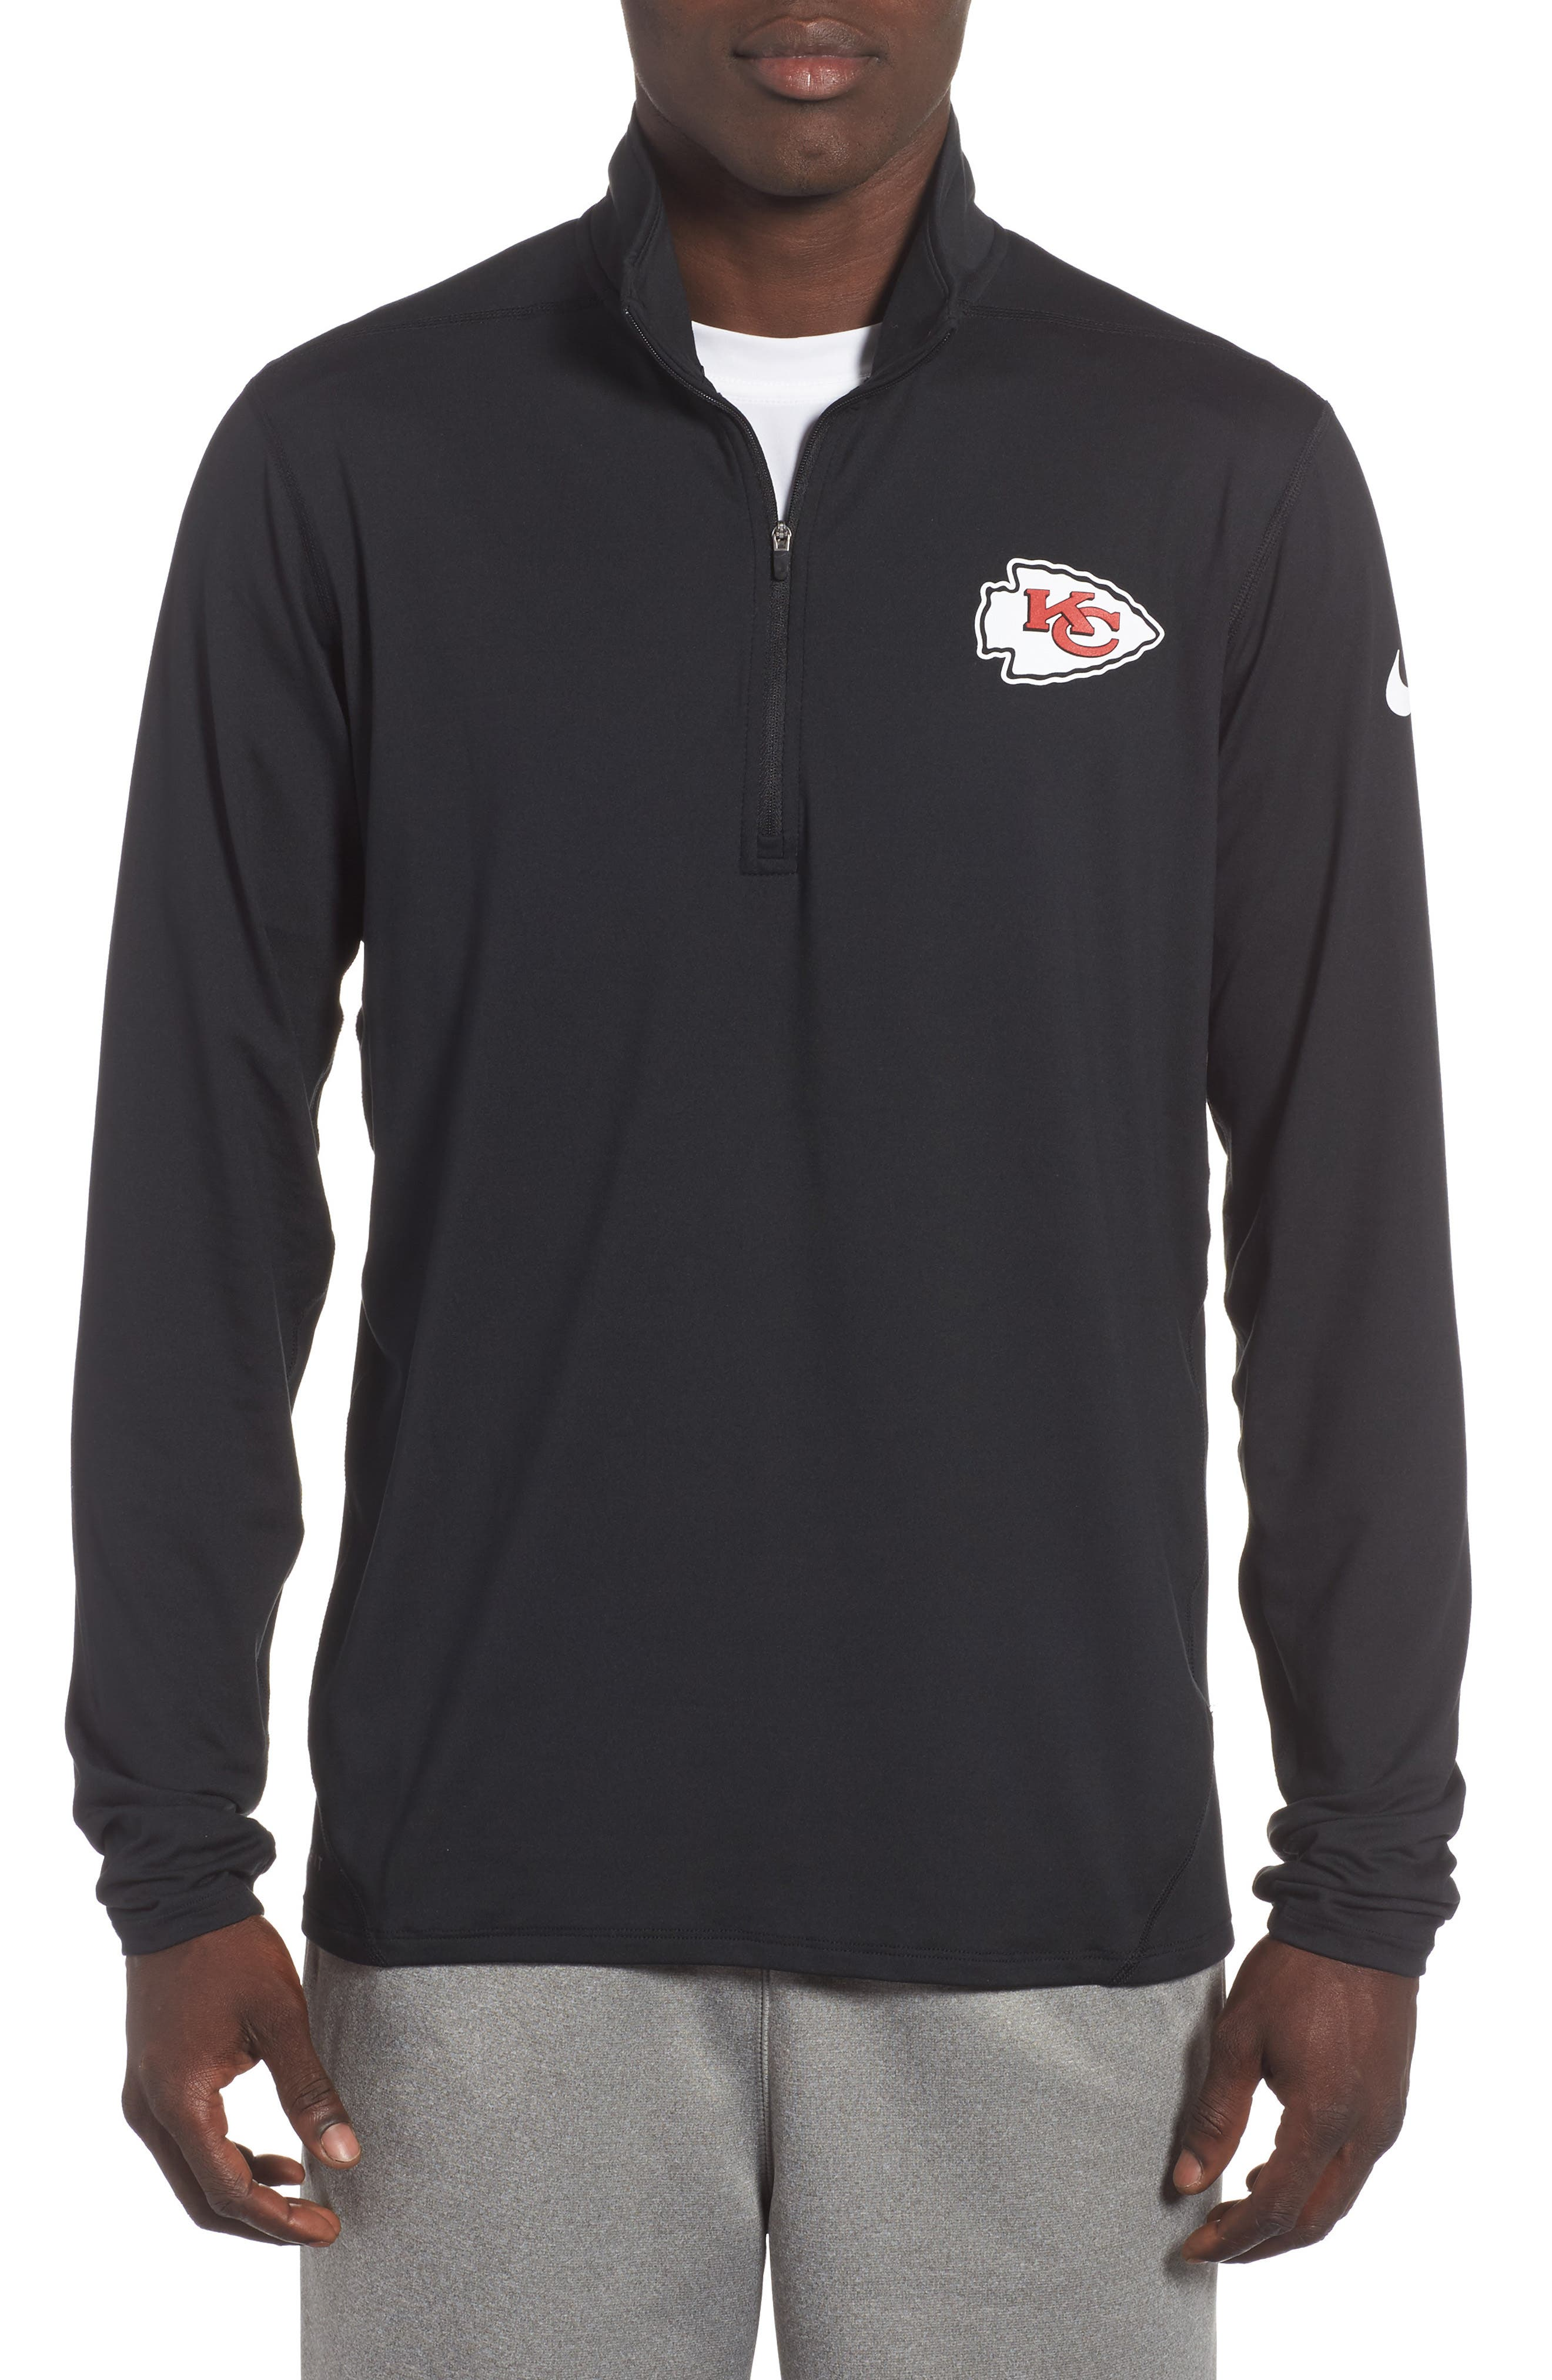 Nike NFL Team Element Quarter Zip Pullover